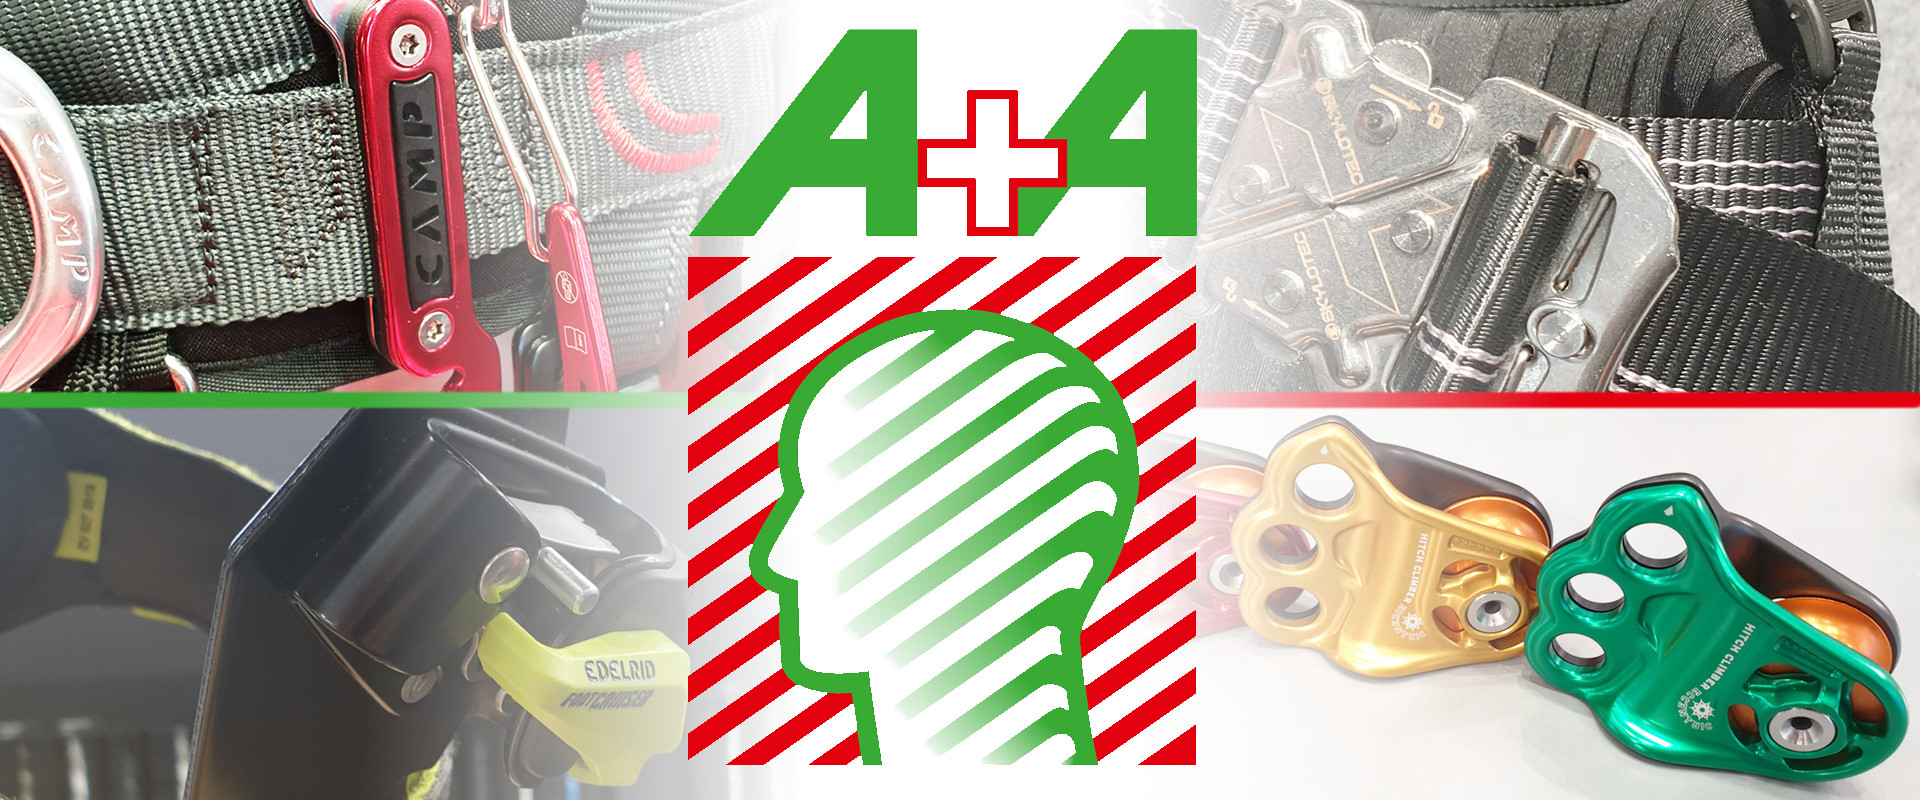 Permalink to: Innovations for tree care and tree climbing at A+A 2019